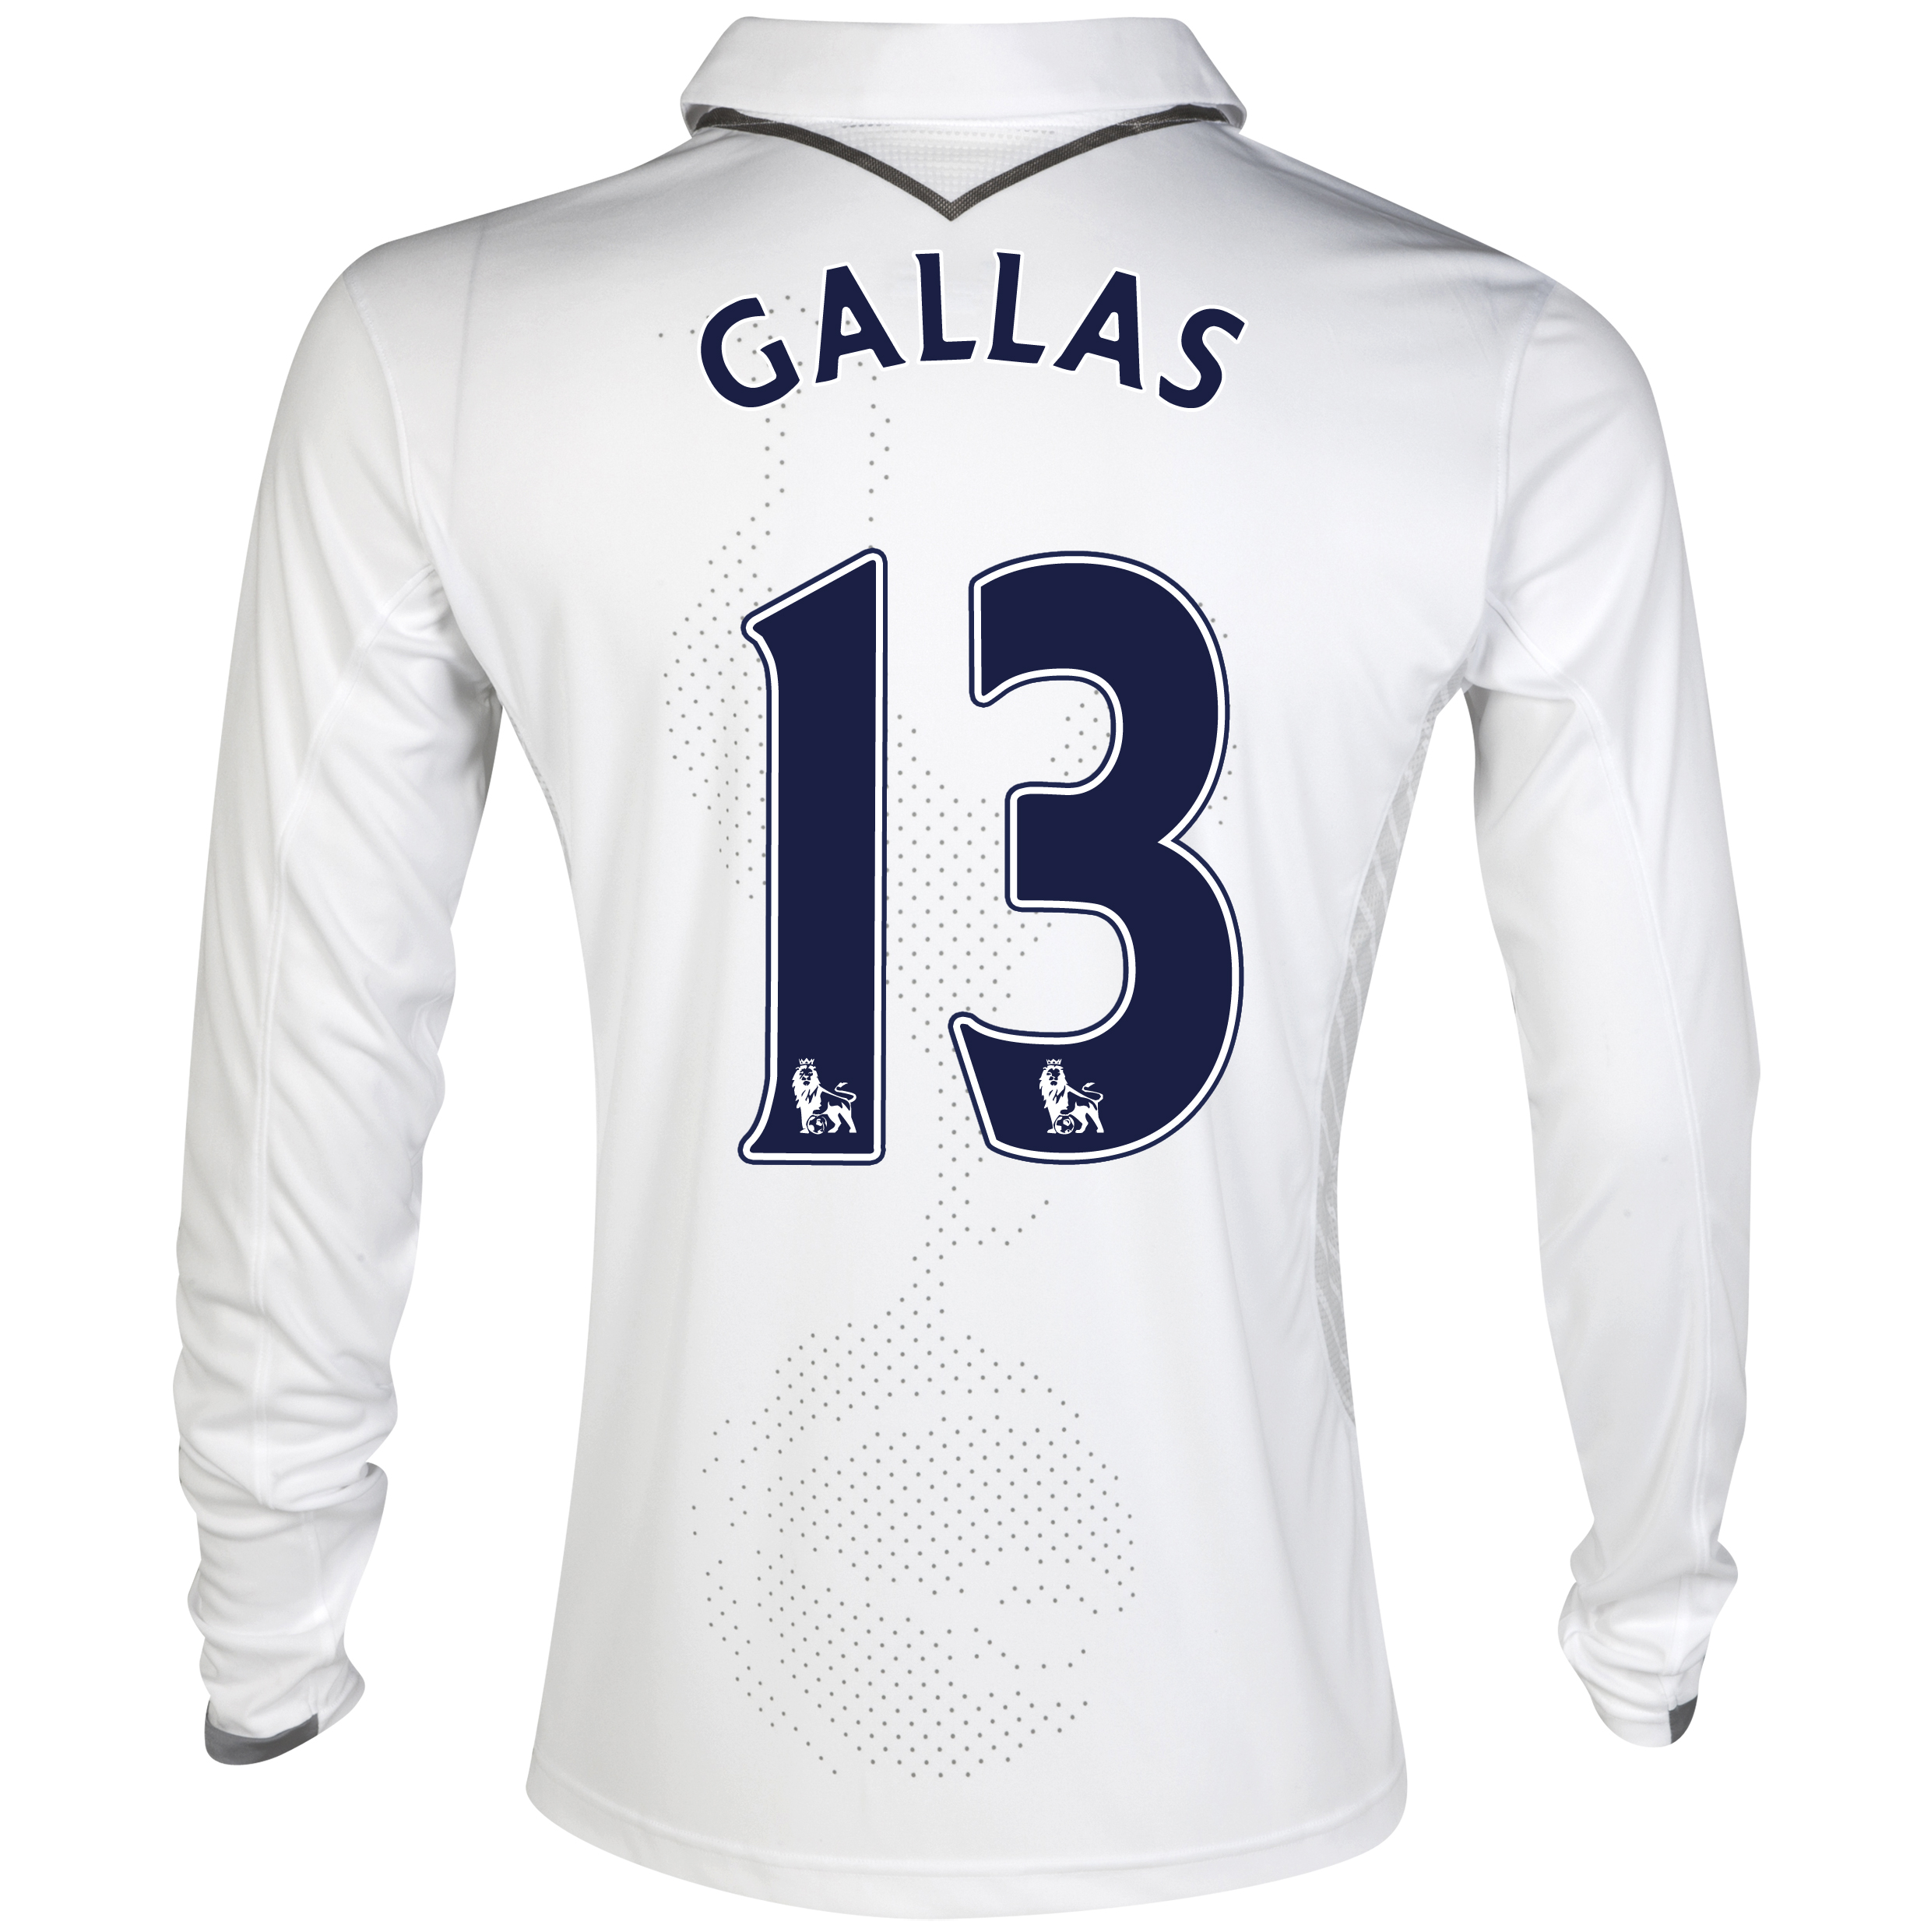 Tottenham Hotspur Home Shirt 2012/13 - Long Sleeve with Gallas 13 printing